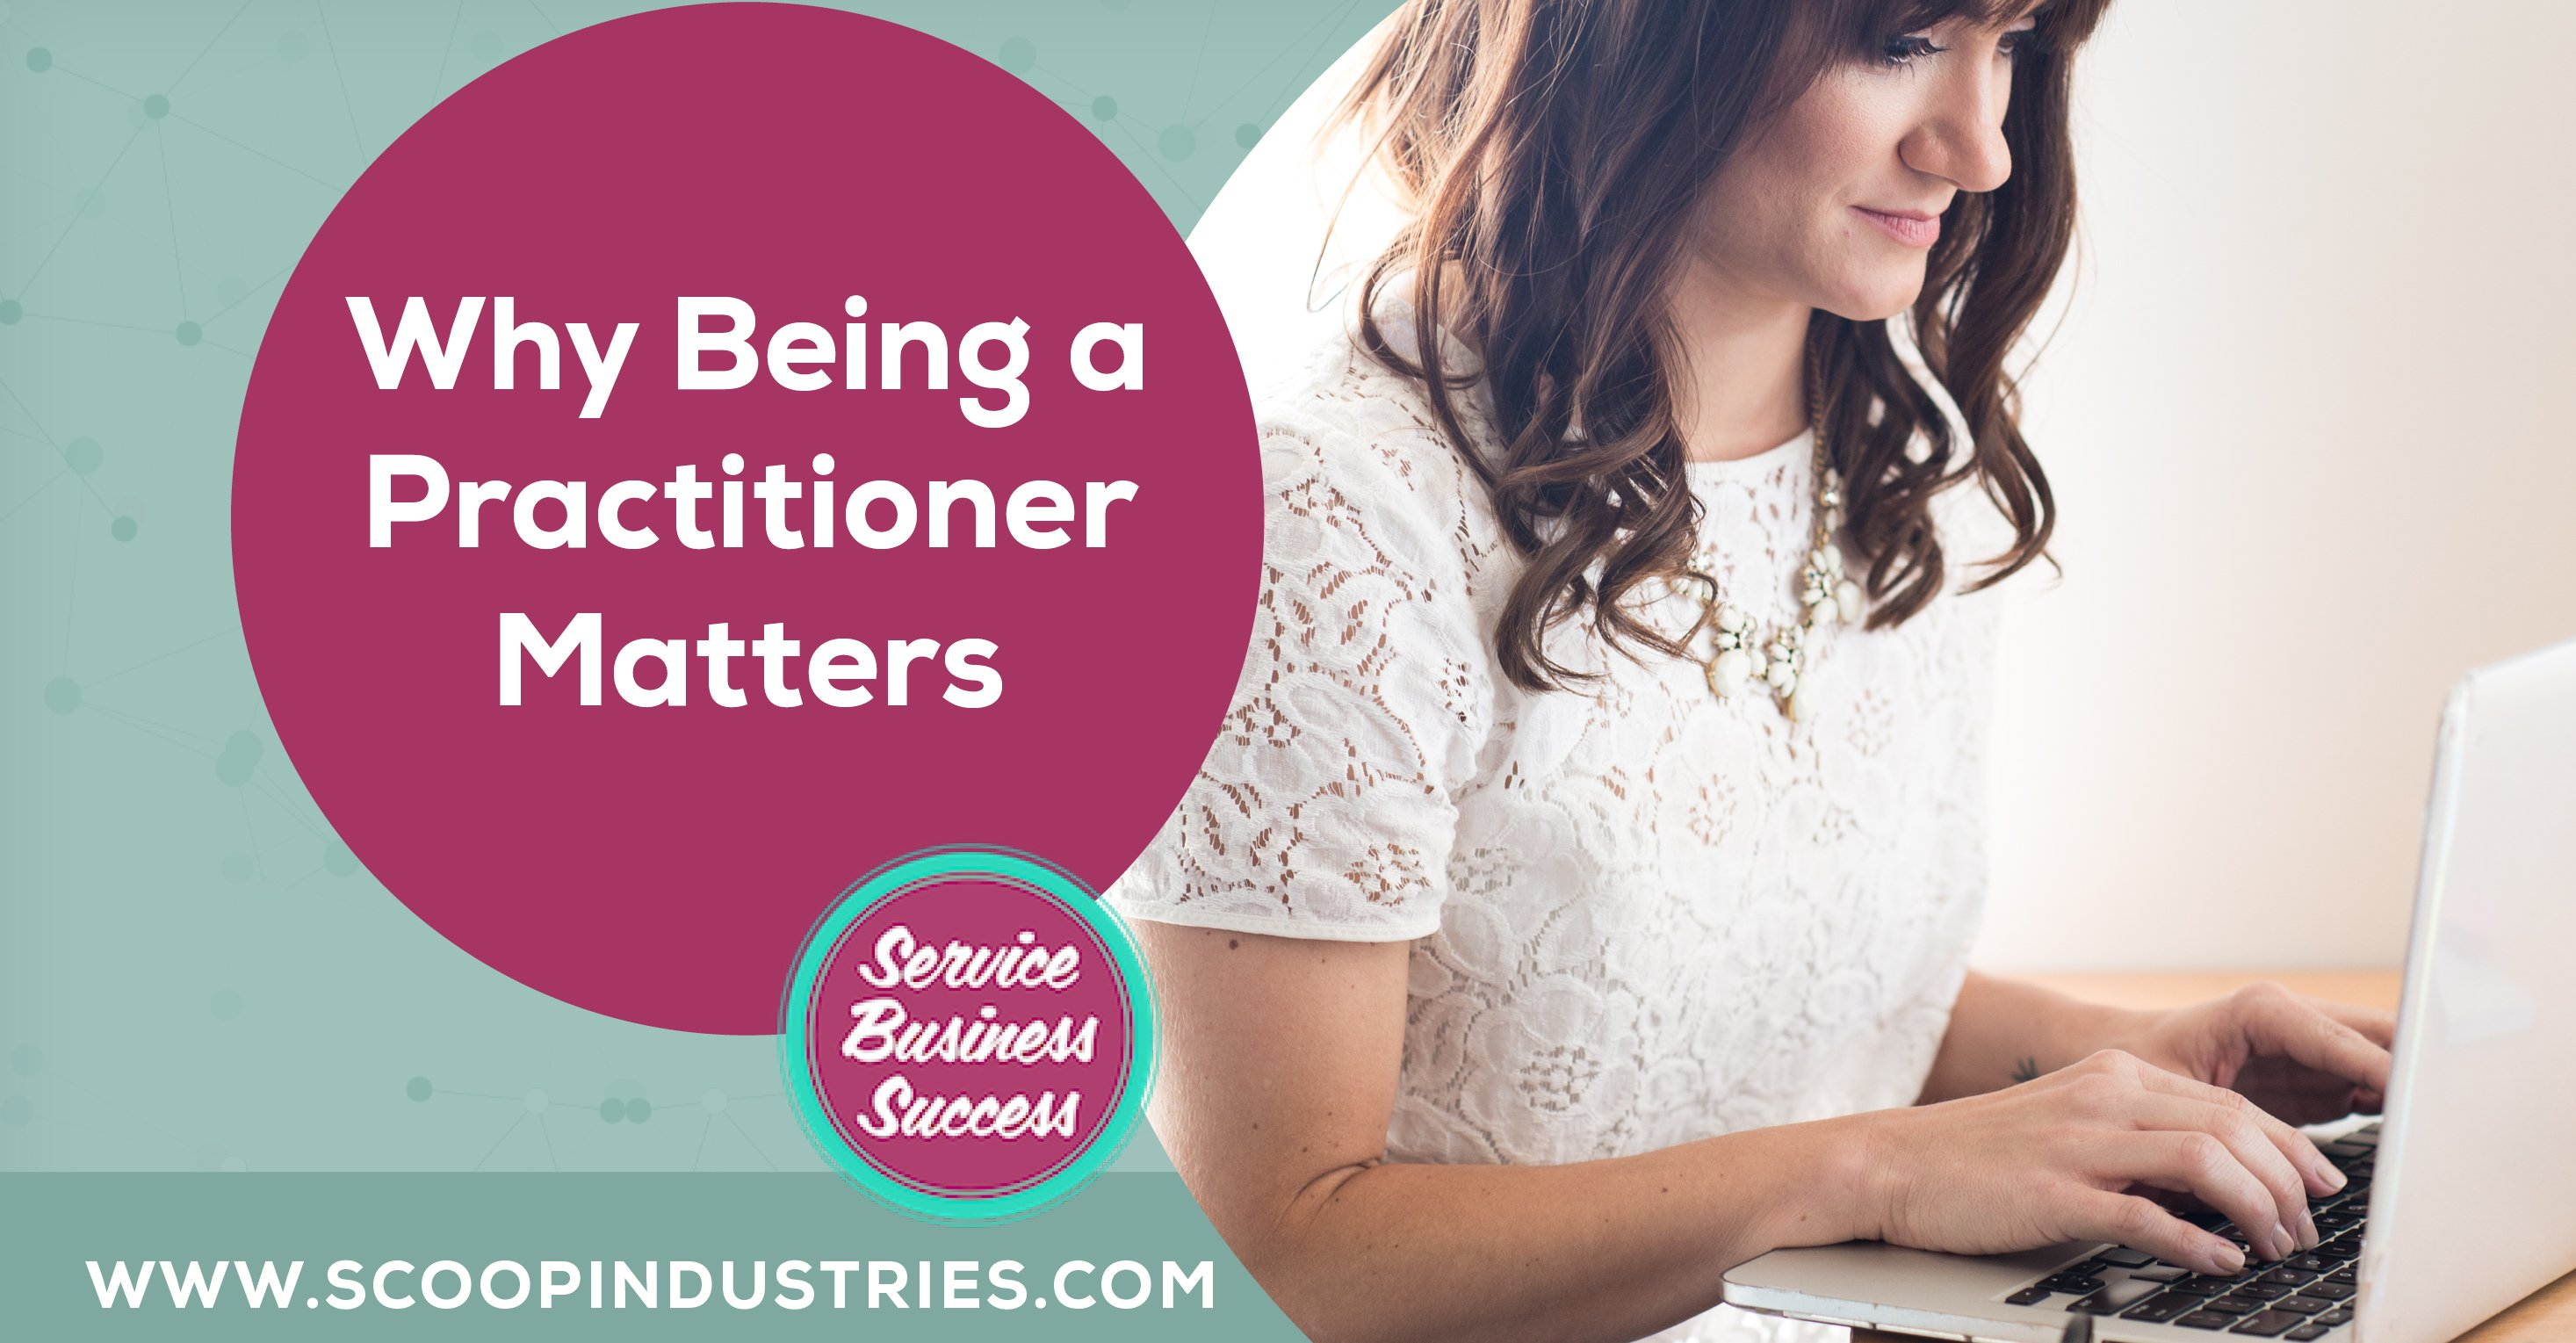 When it comes to the wild world known as the internet, just about anyone with a computer can launch a course or call themselves an expert. But skills and experience are what makes (or breaks!) a services business. Here's why being a practitioner matters.